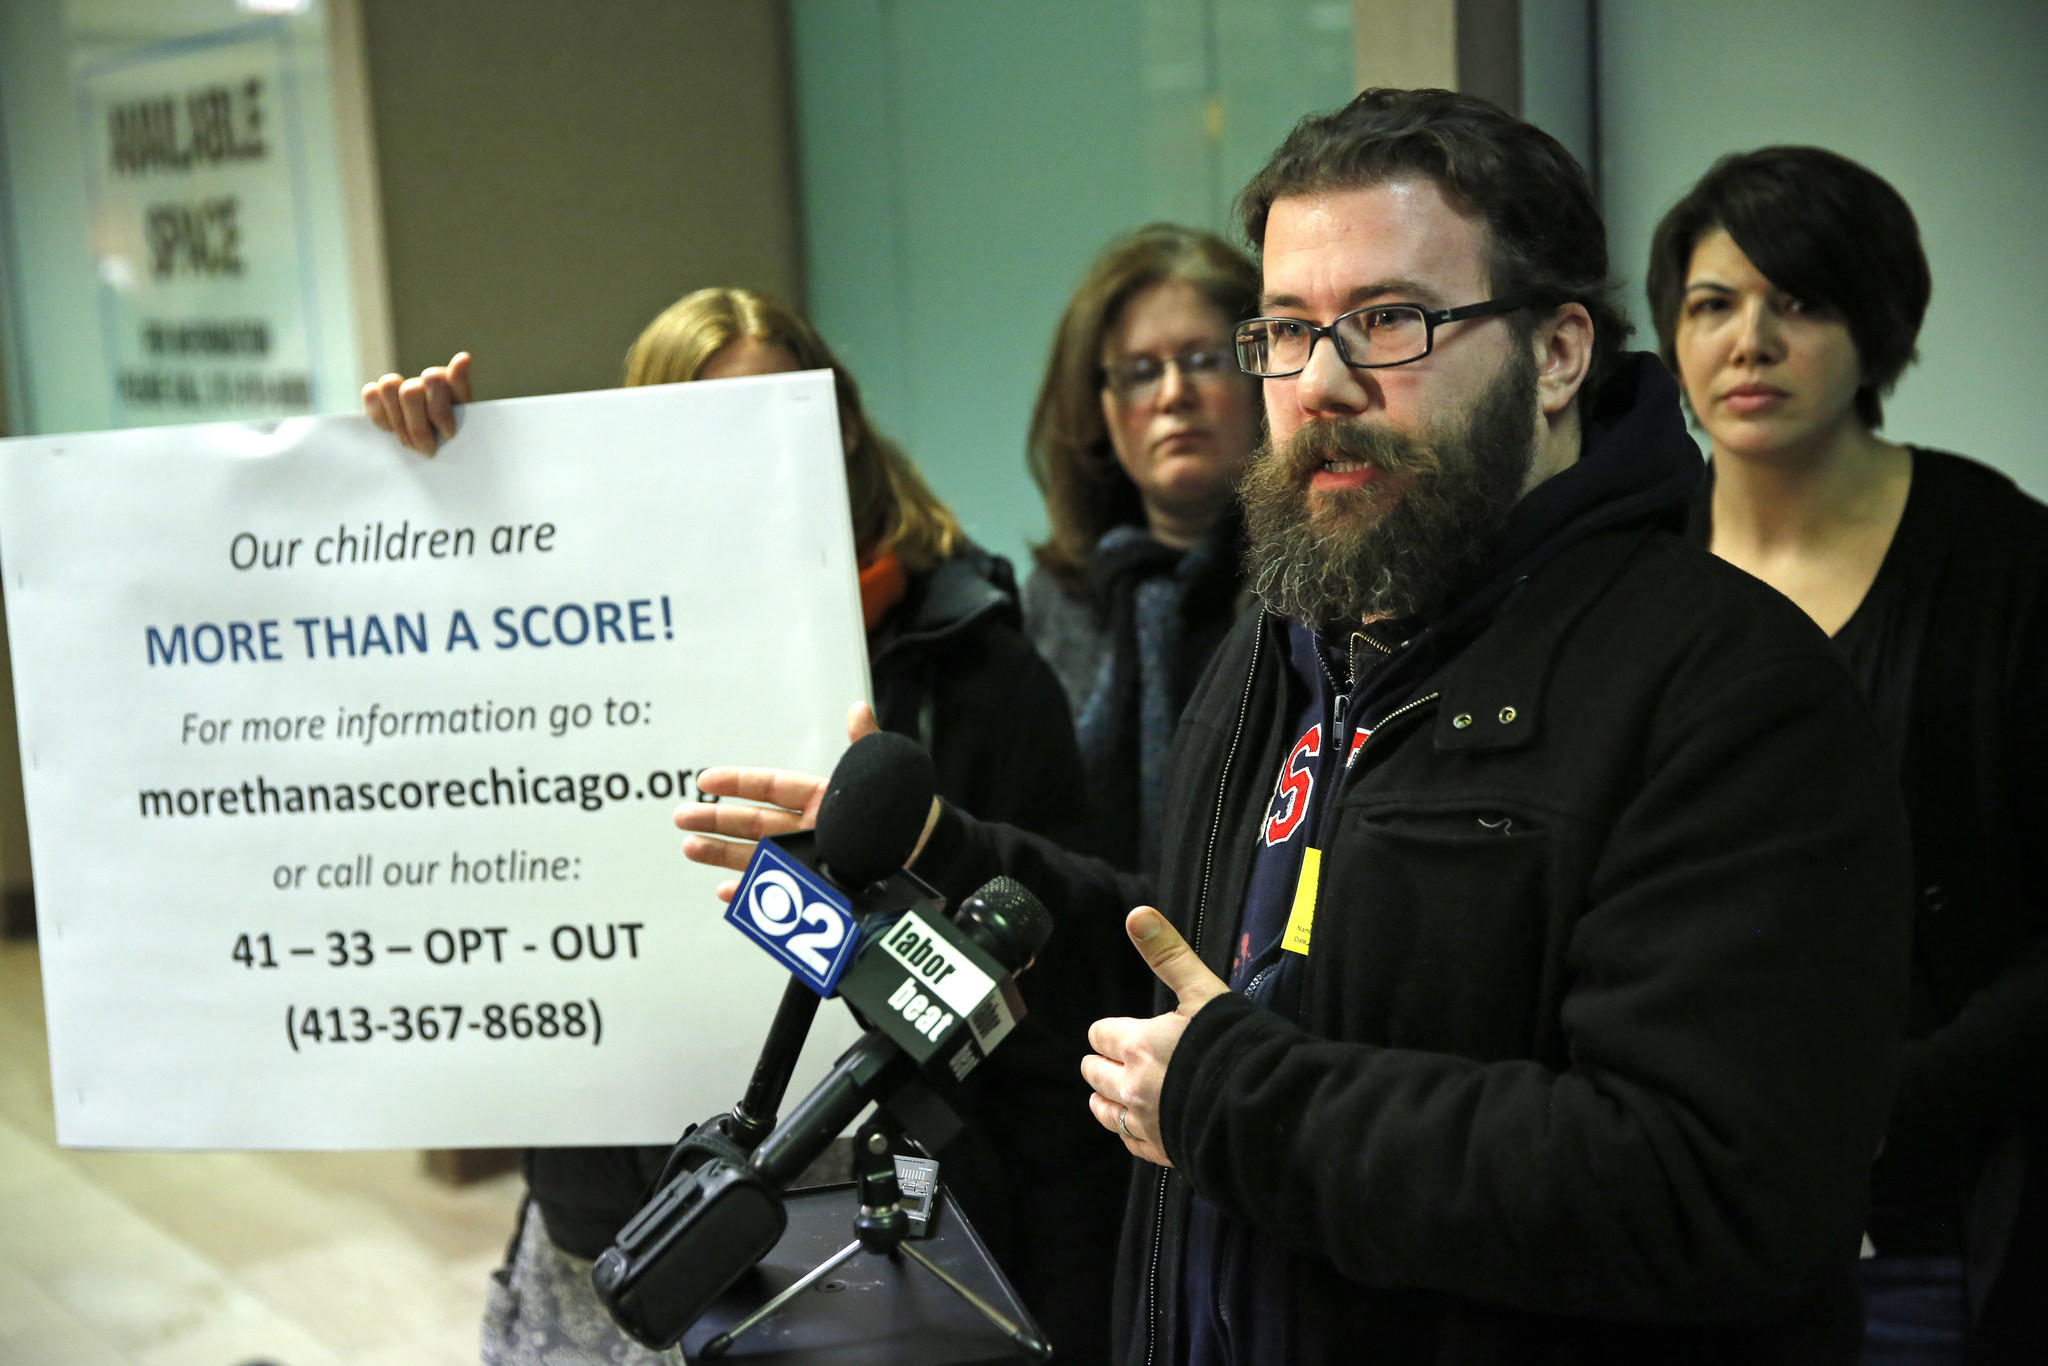 Chris Barrett (R), who has two boys that attend Drummond Montessori Magnet School, speaks about boycotting the Illinois Standards Achievement Test (ISAT) seen here outside of the lobby of Chicago Public Schools headquarters on Feb. 24.